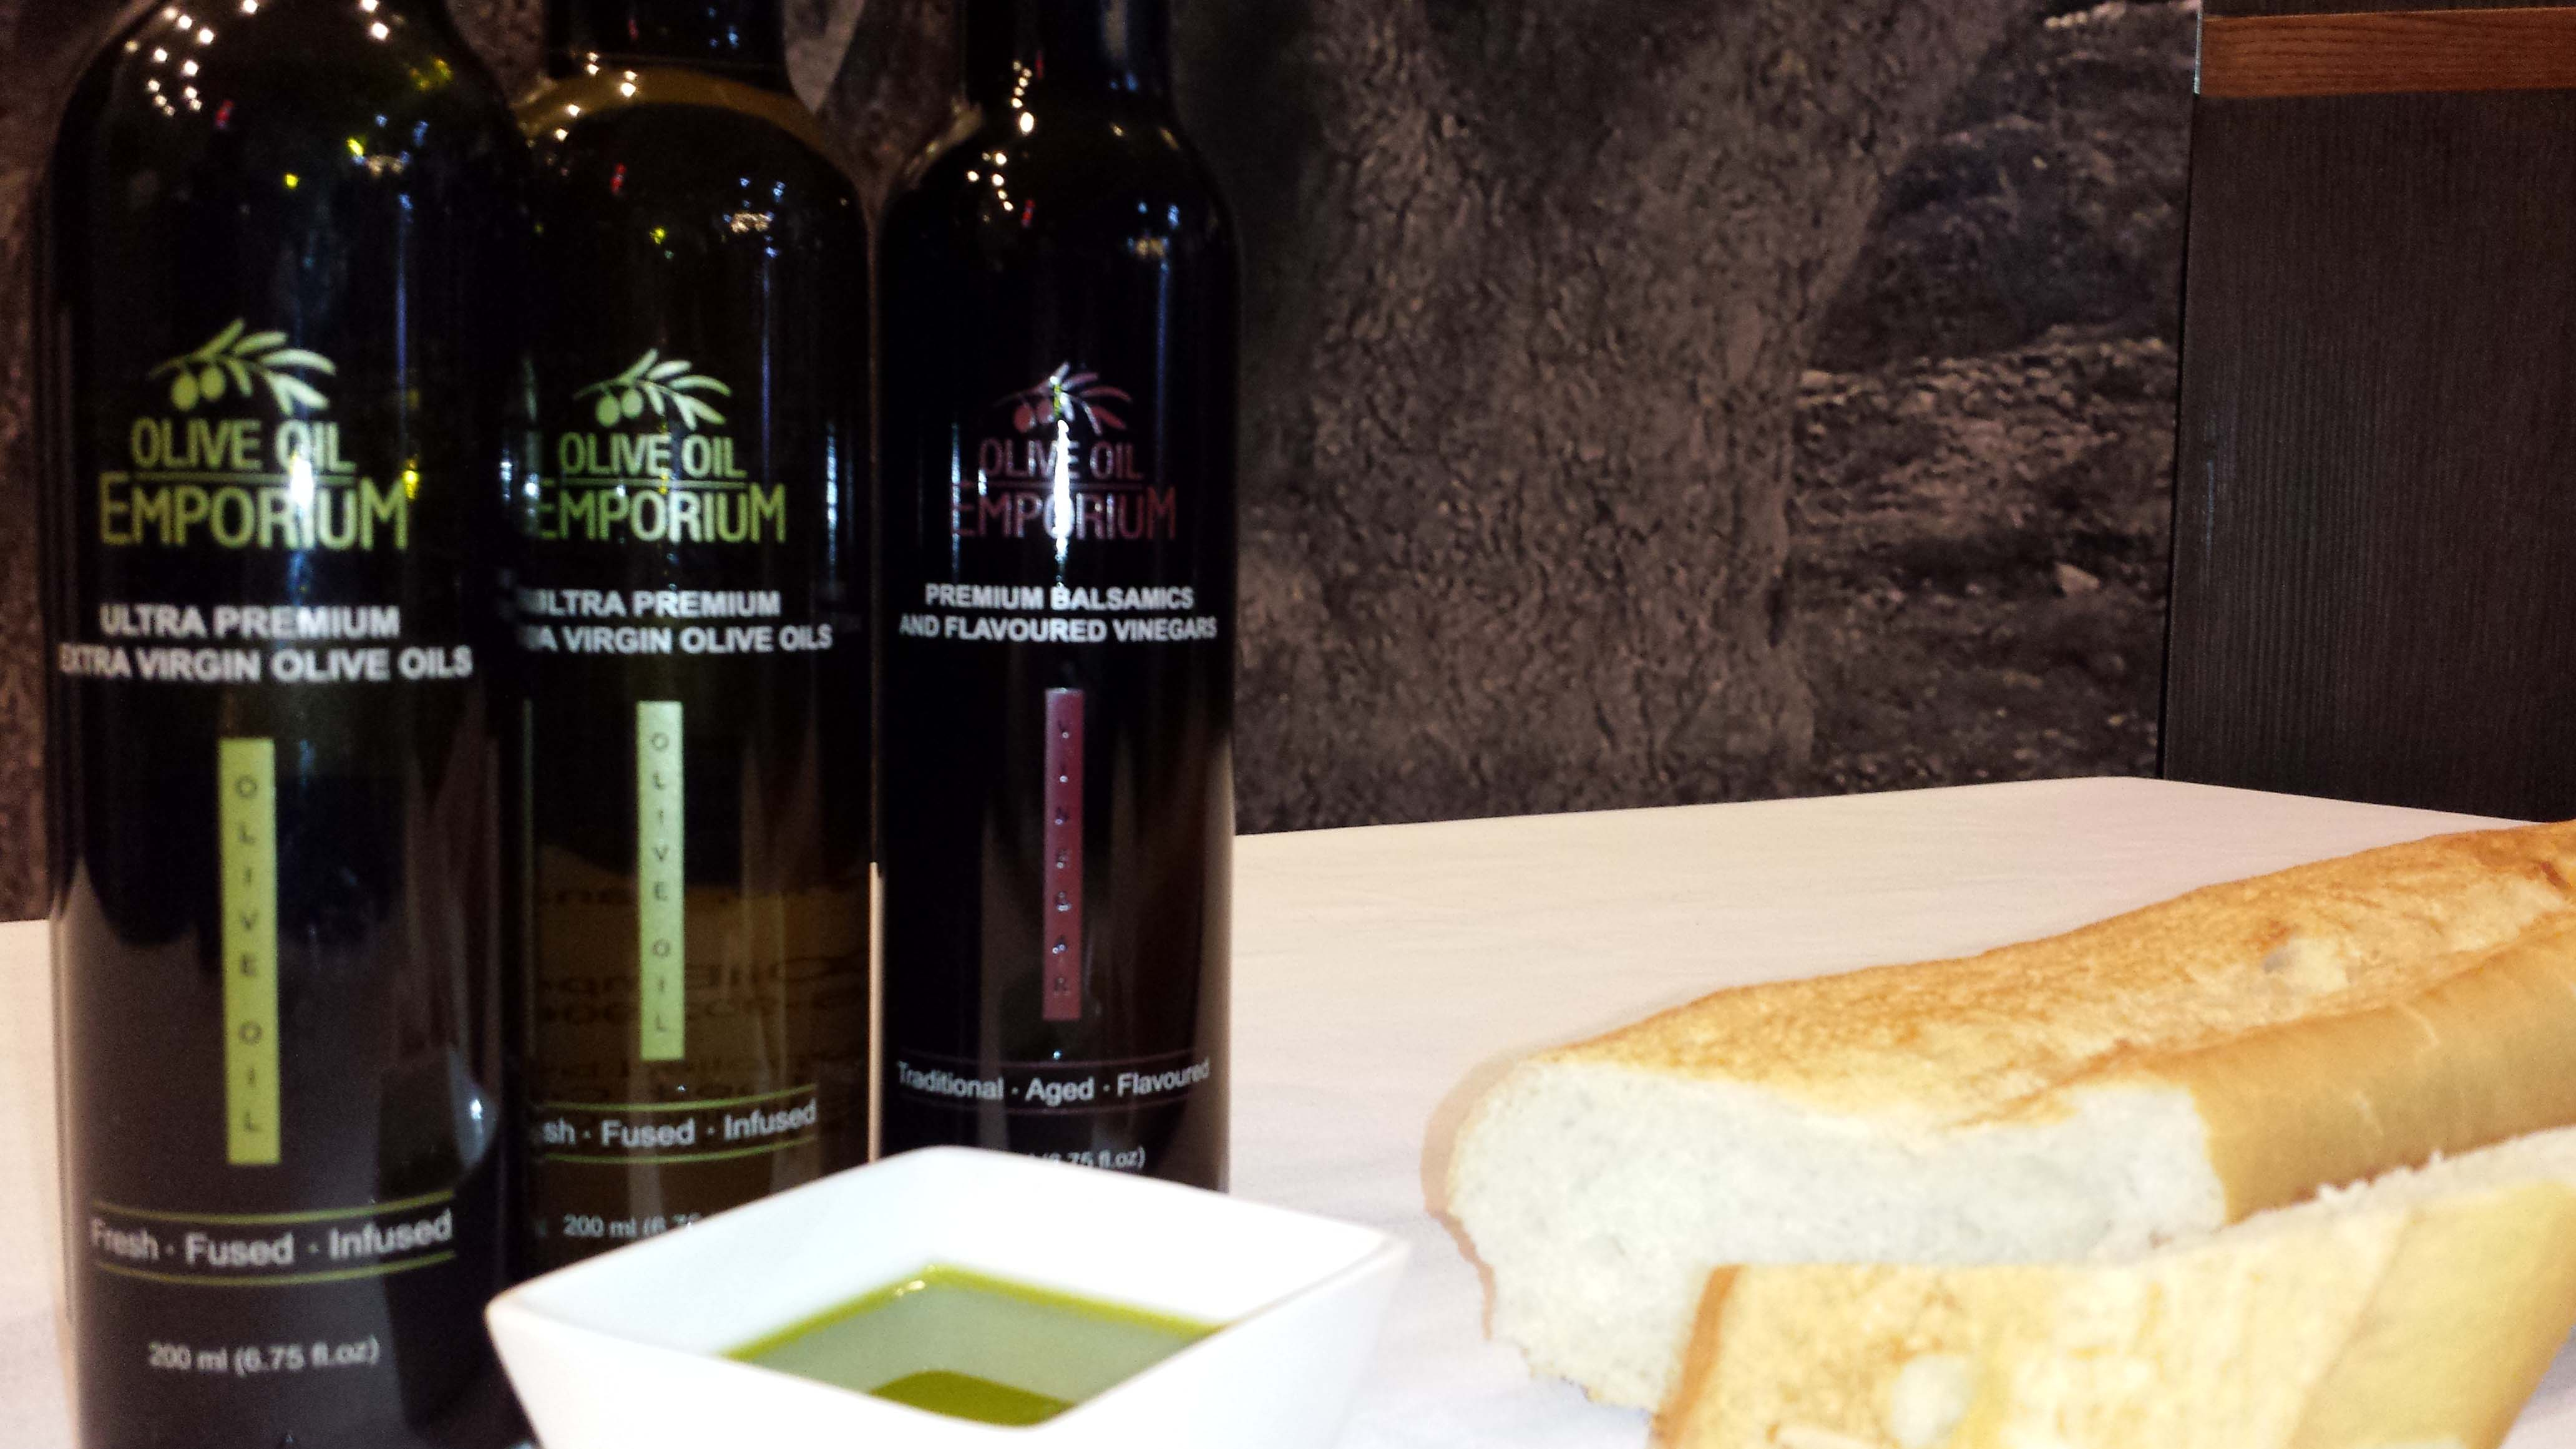 New Harvest Extra Virgin Olive Oils - 2017